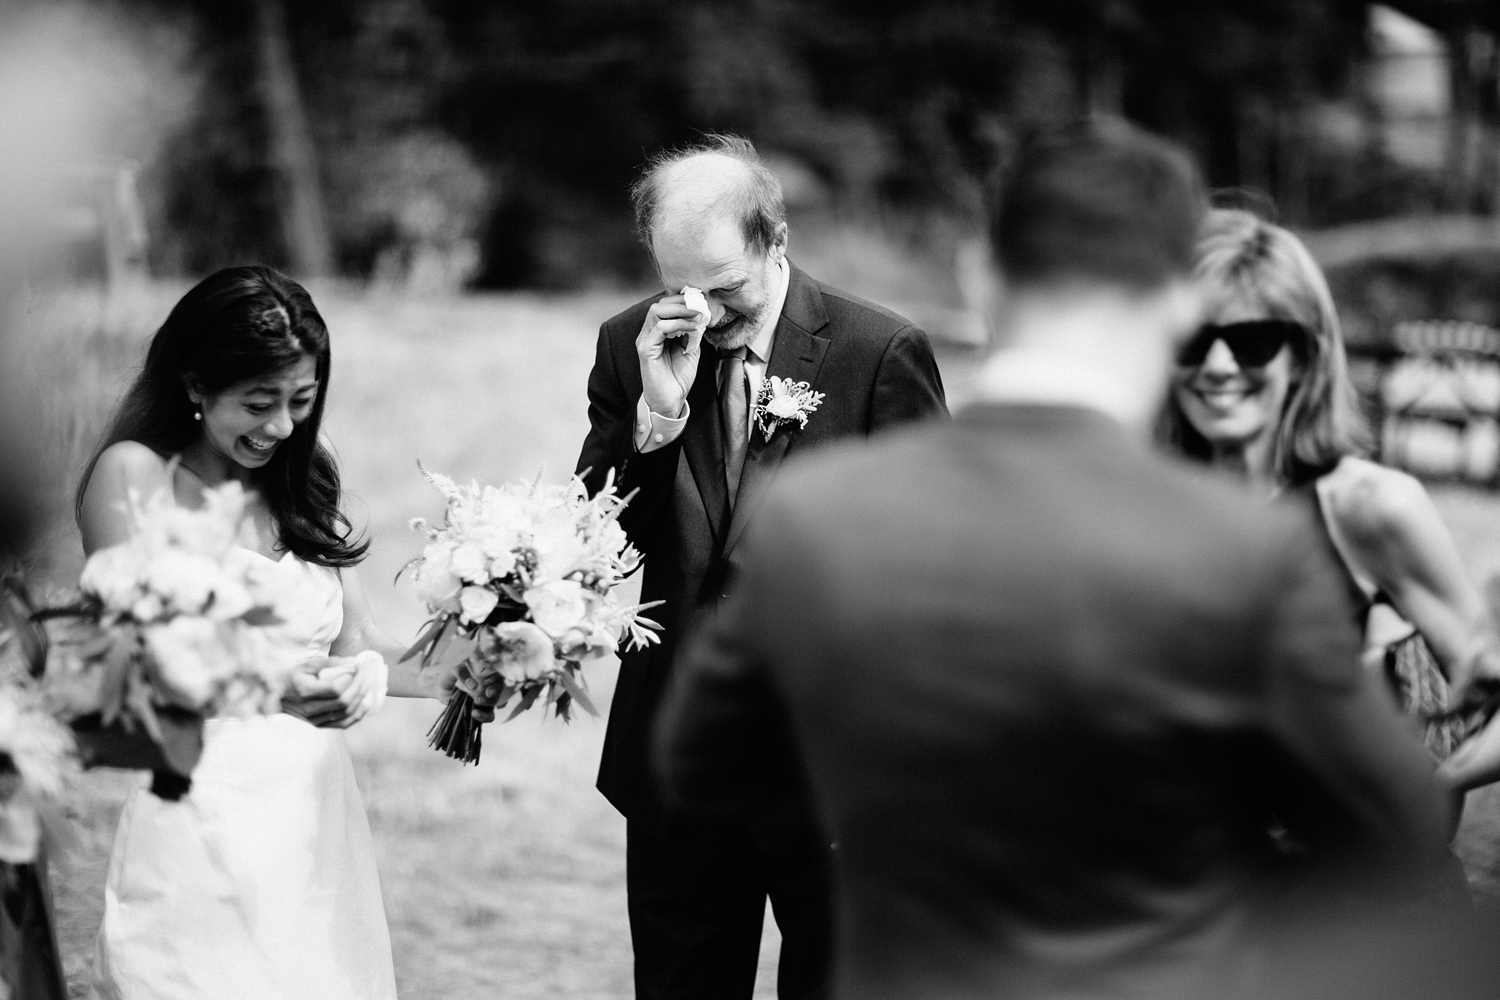 ryan-flynn-photography-best-wedding-photos-2014-0113.JPG